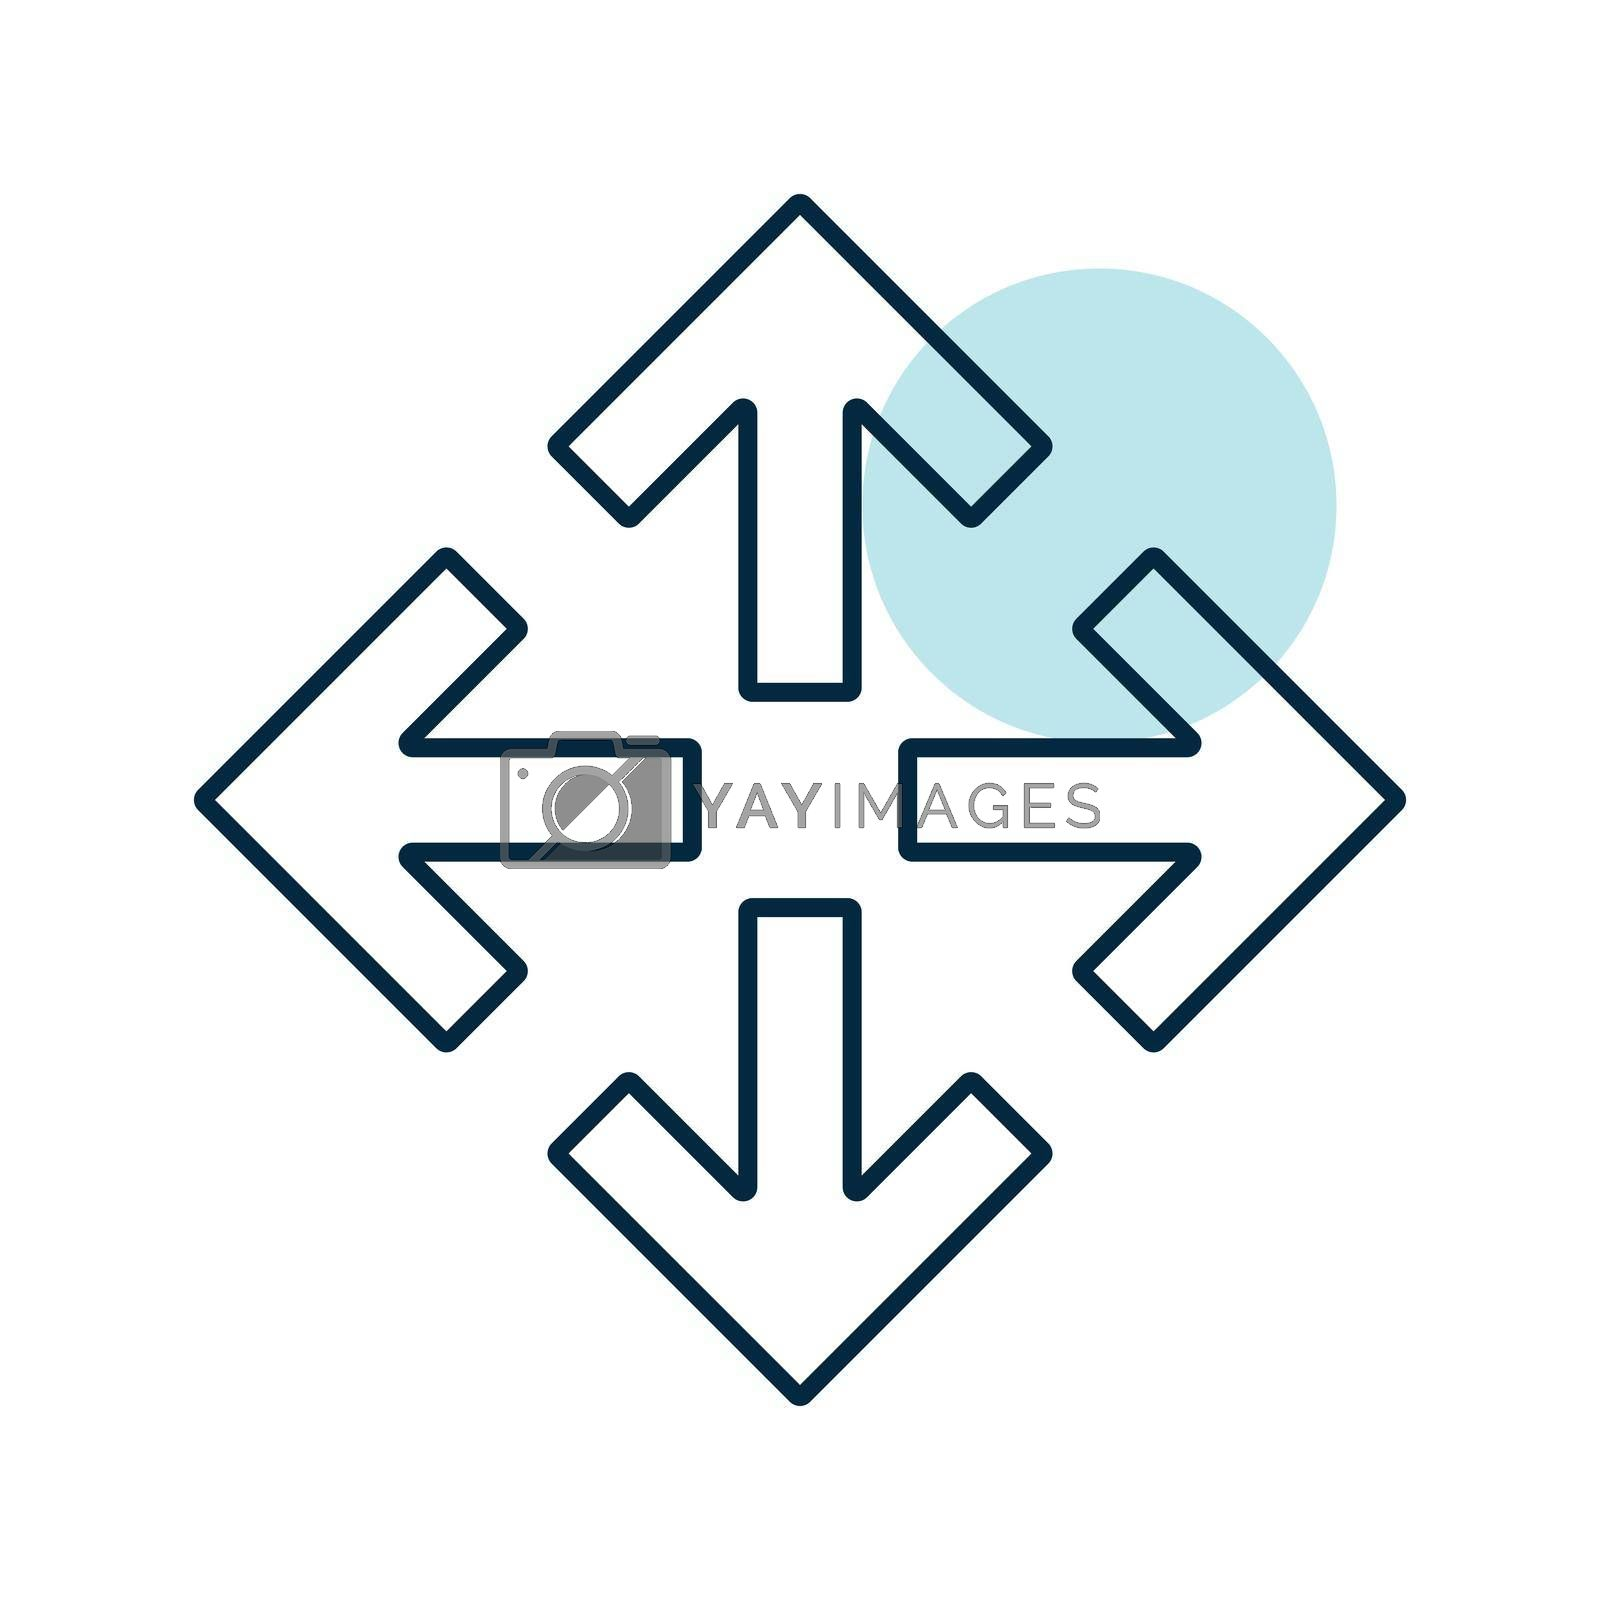 Four arrows pointing from the center vector icon. Navigation sign. Graph symbol for travel and tourism web site and apps design, logo, app, UI